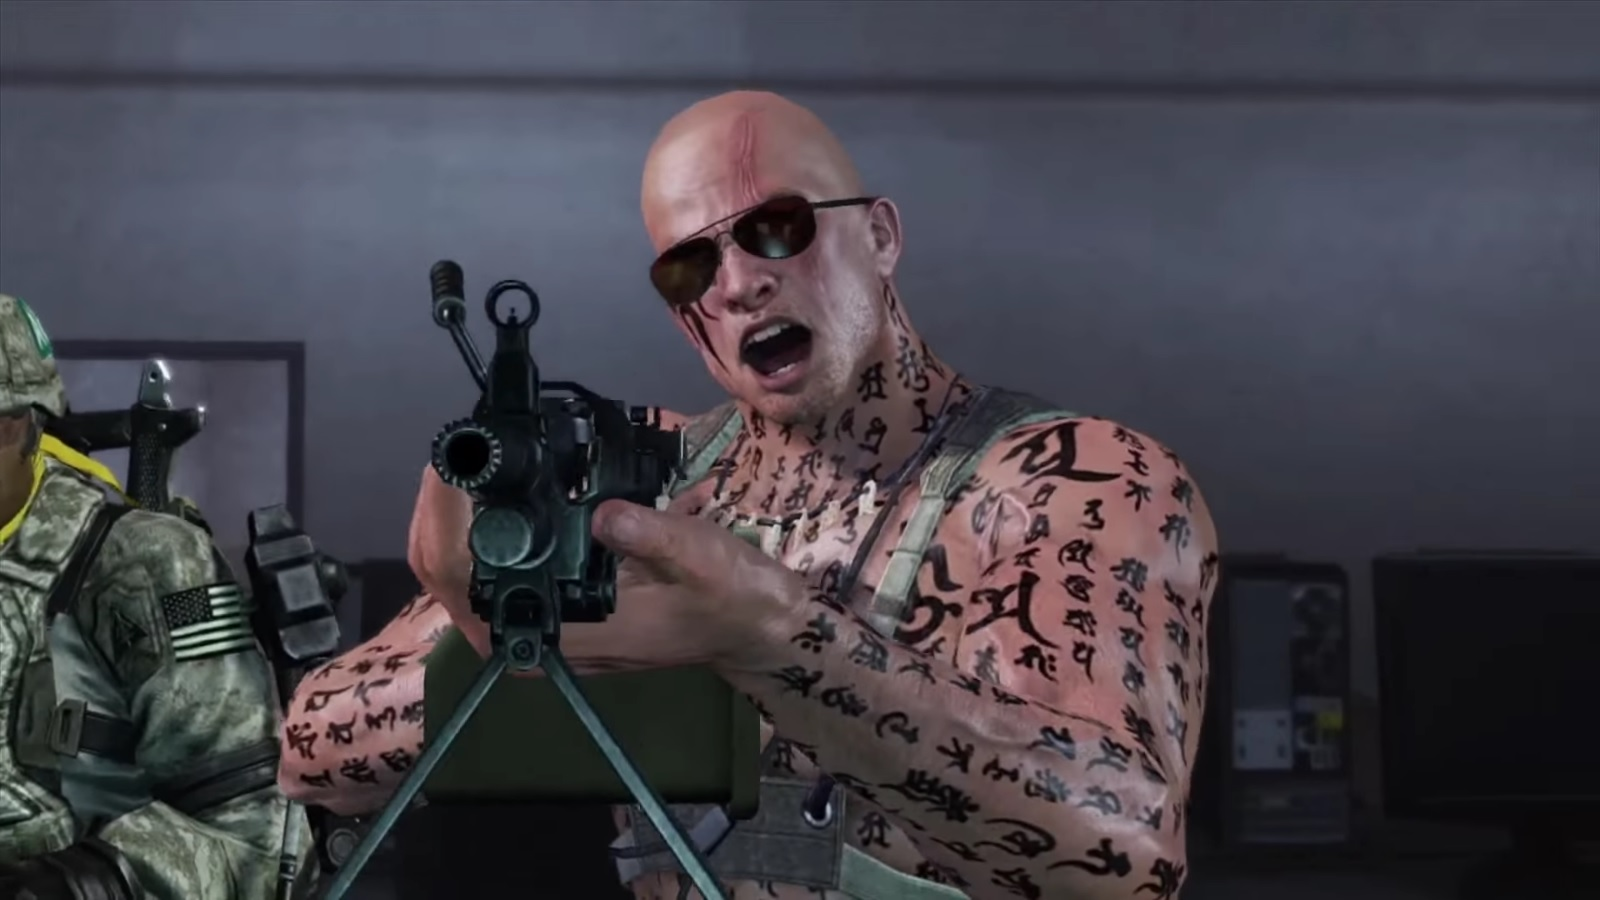 itagaki talks devil s third how it ended up on wii u low s a lengthy interview valhalla game studios head tomonobu itagaki much of the discussion centered around the ill fated wii u game devil s third